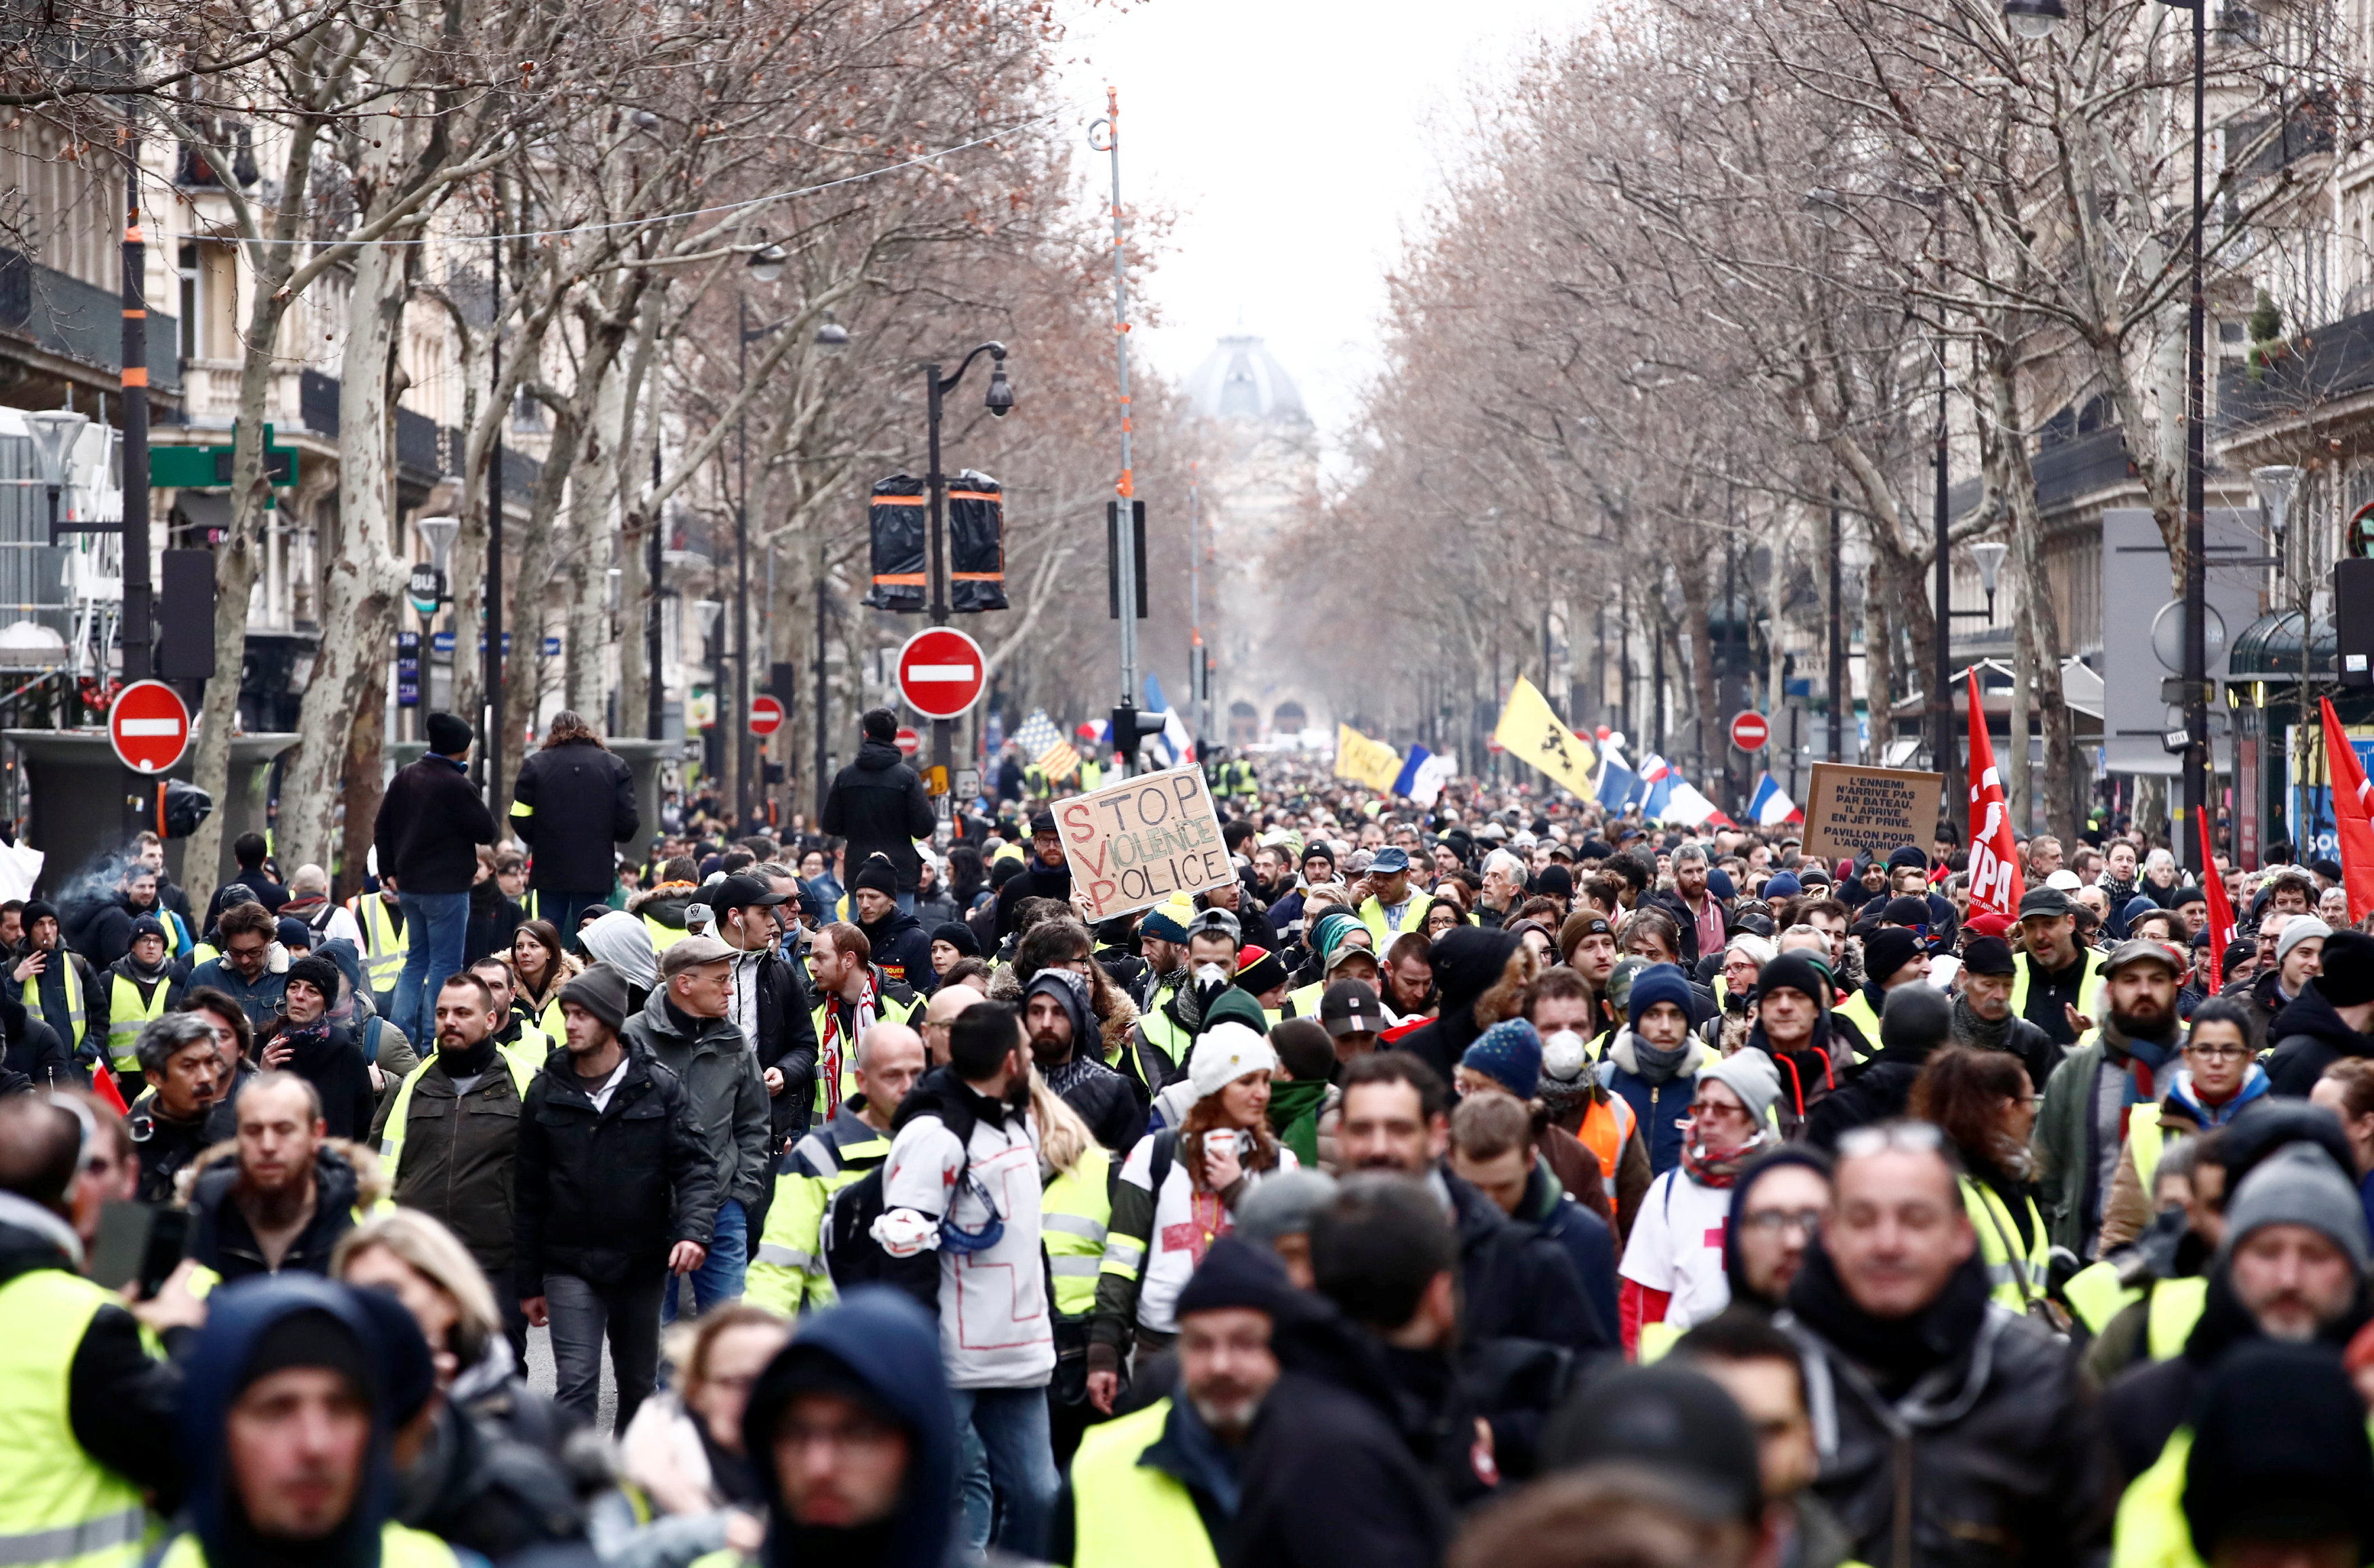 2019-01-12T120903Z_882914611_RC1733DAC6C0_RTRMADP_3_FRANCE-PROTESTS